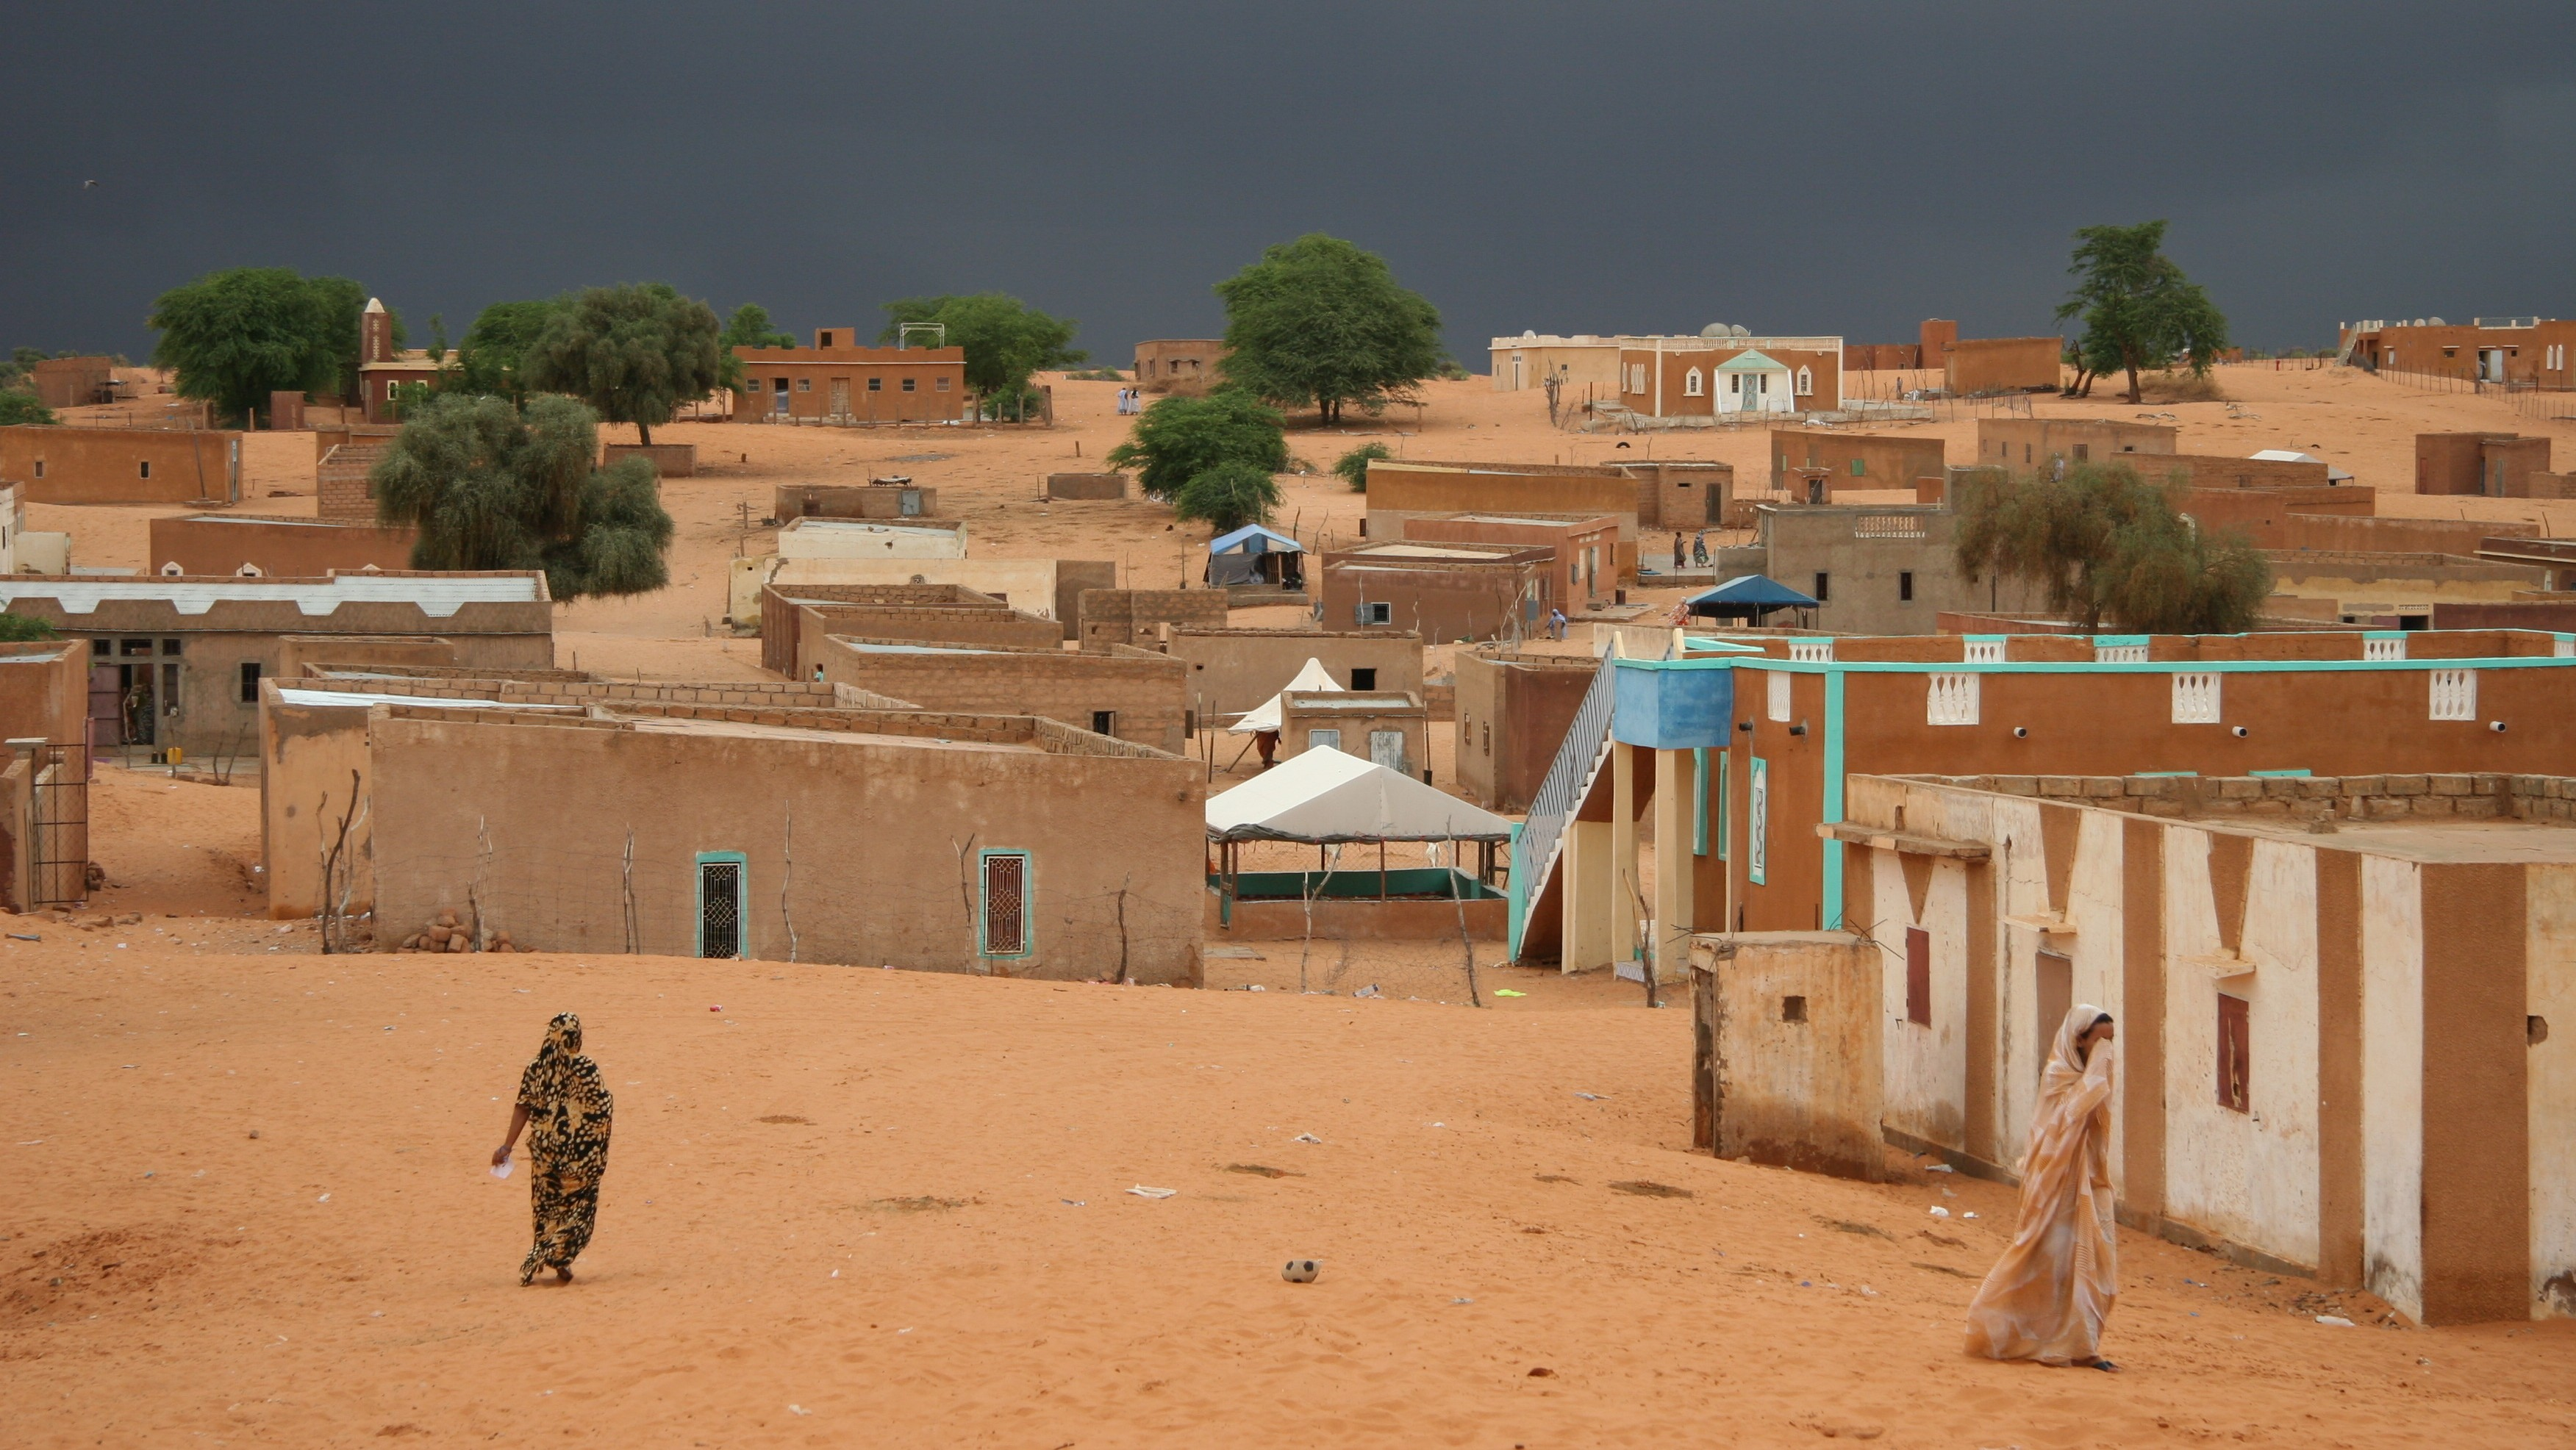 Anti-Slavery Campaigners Arrested in Mauritania, the Country With the World's Highest Slavery Rate